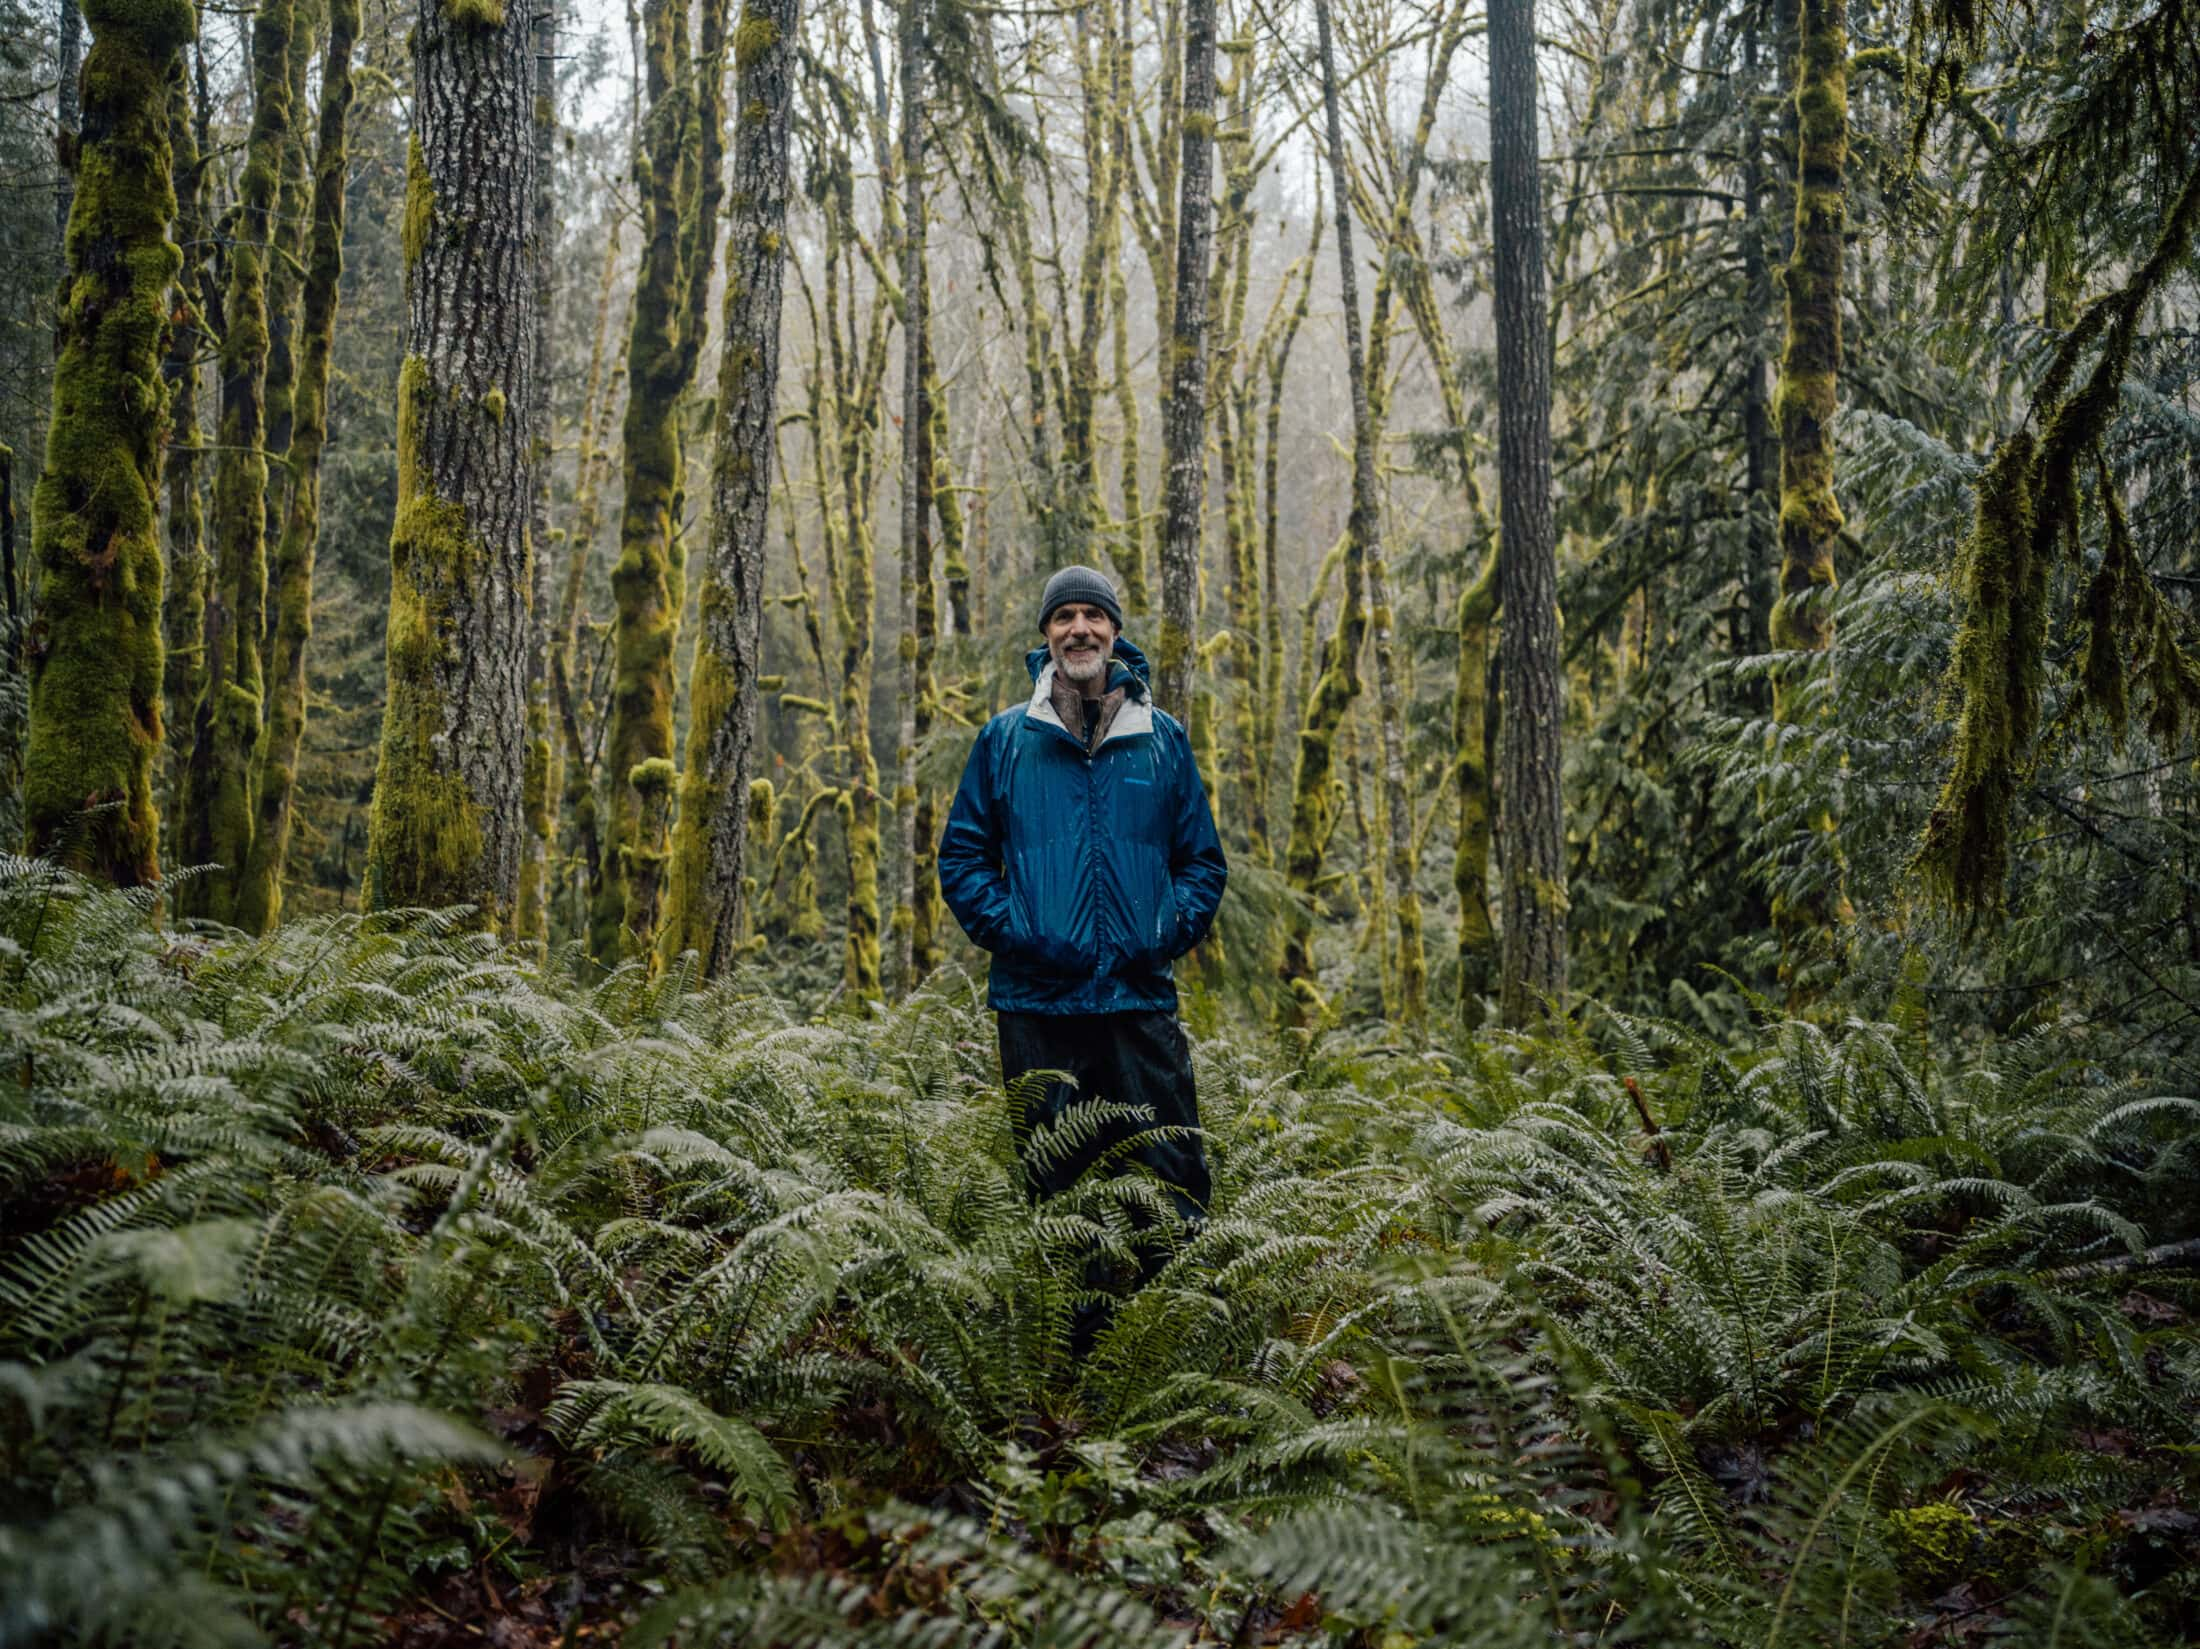 Tom Rutherford stands in a lush green forest